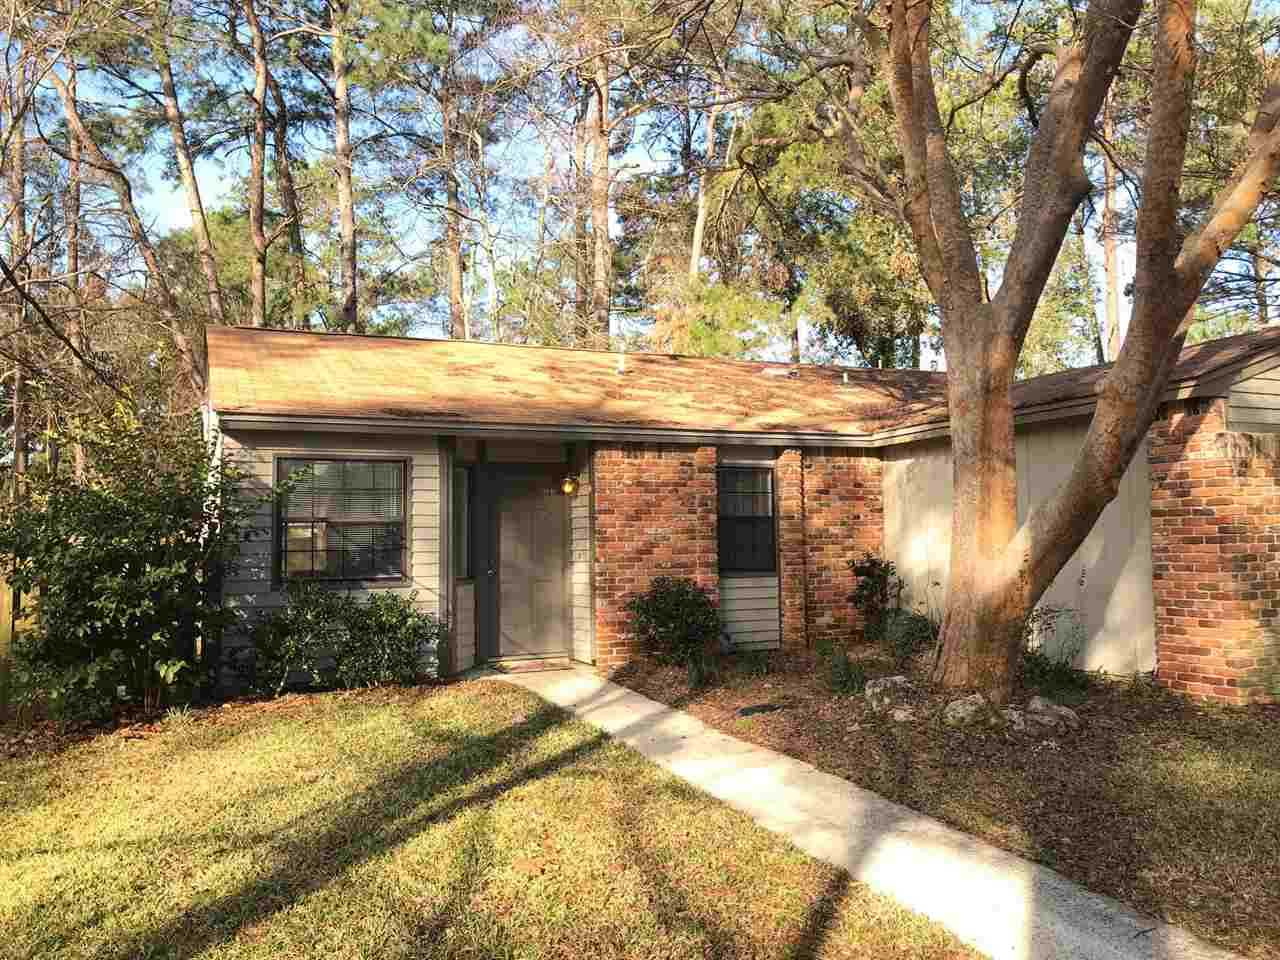 3226 Mound Drive Tallahassee, FL 32309 in Arbor Hill Patio Homes Photo 1